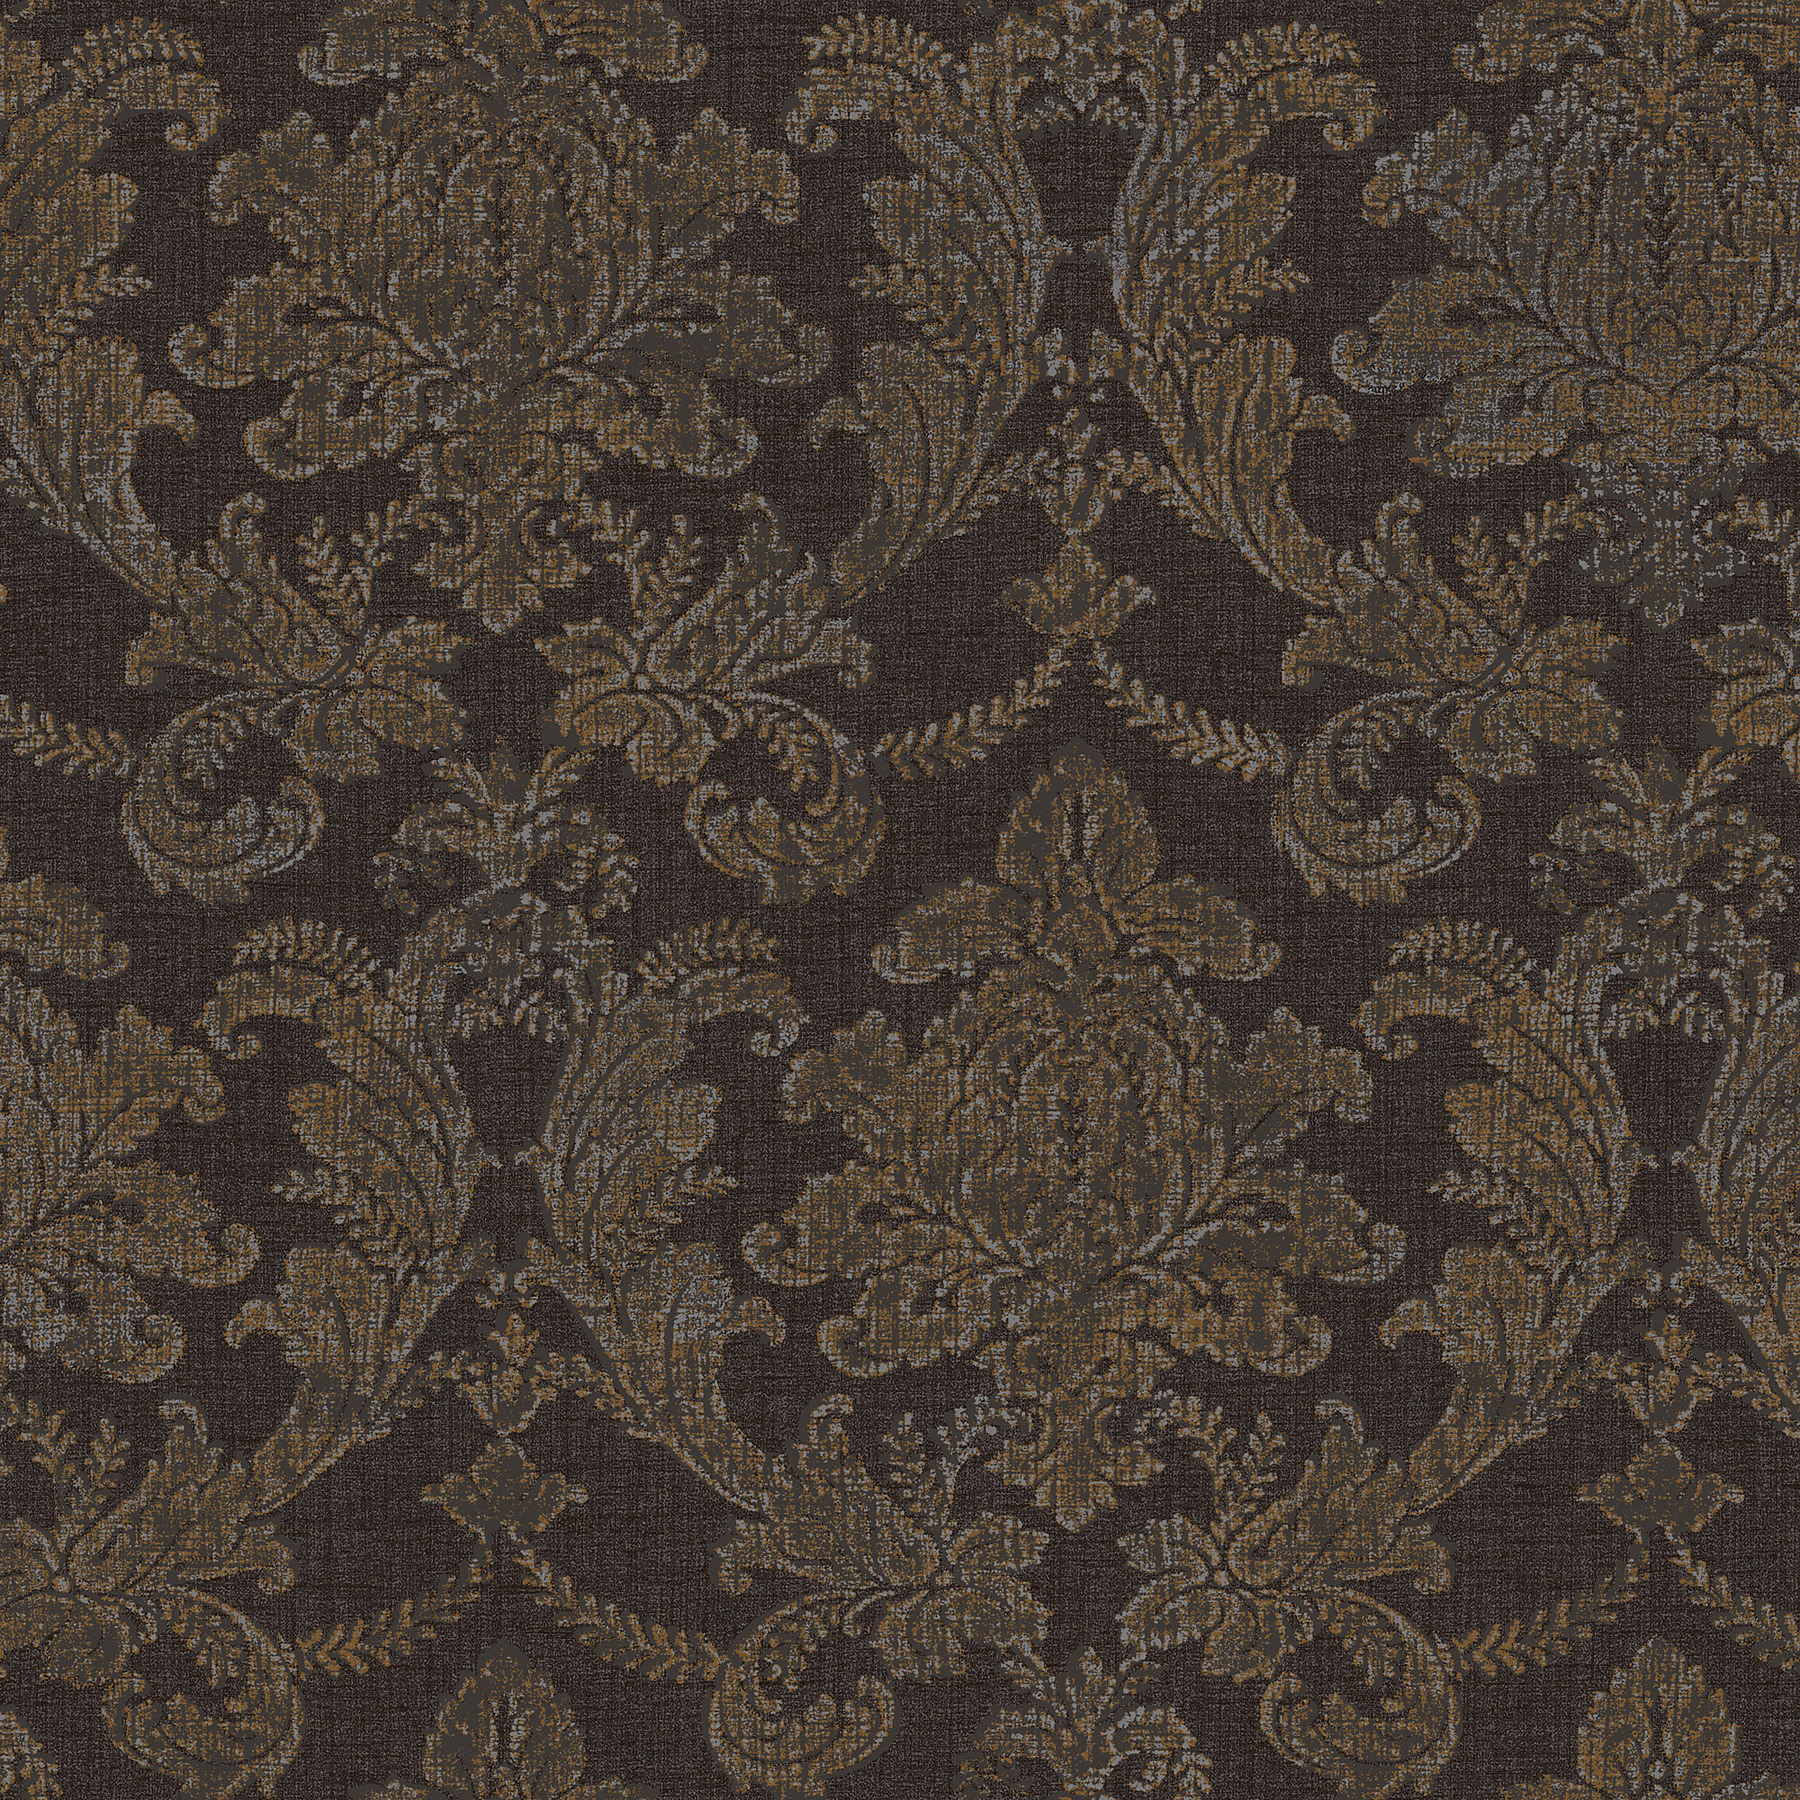 Picture of Brown Textured Damask Wallpaper